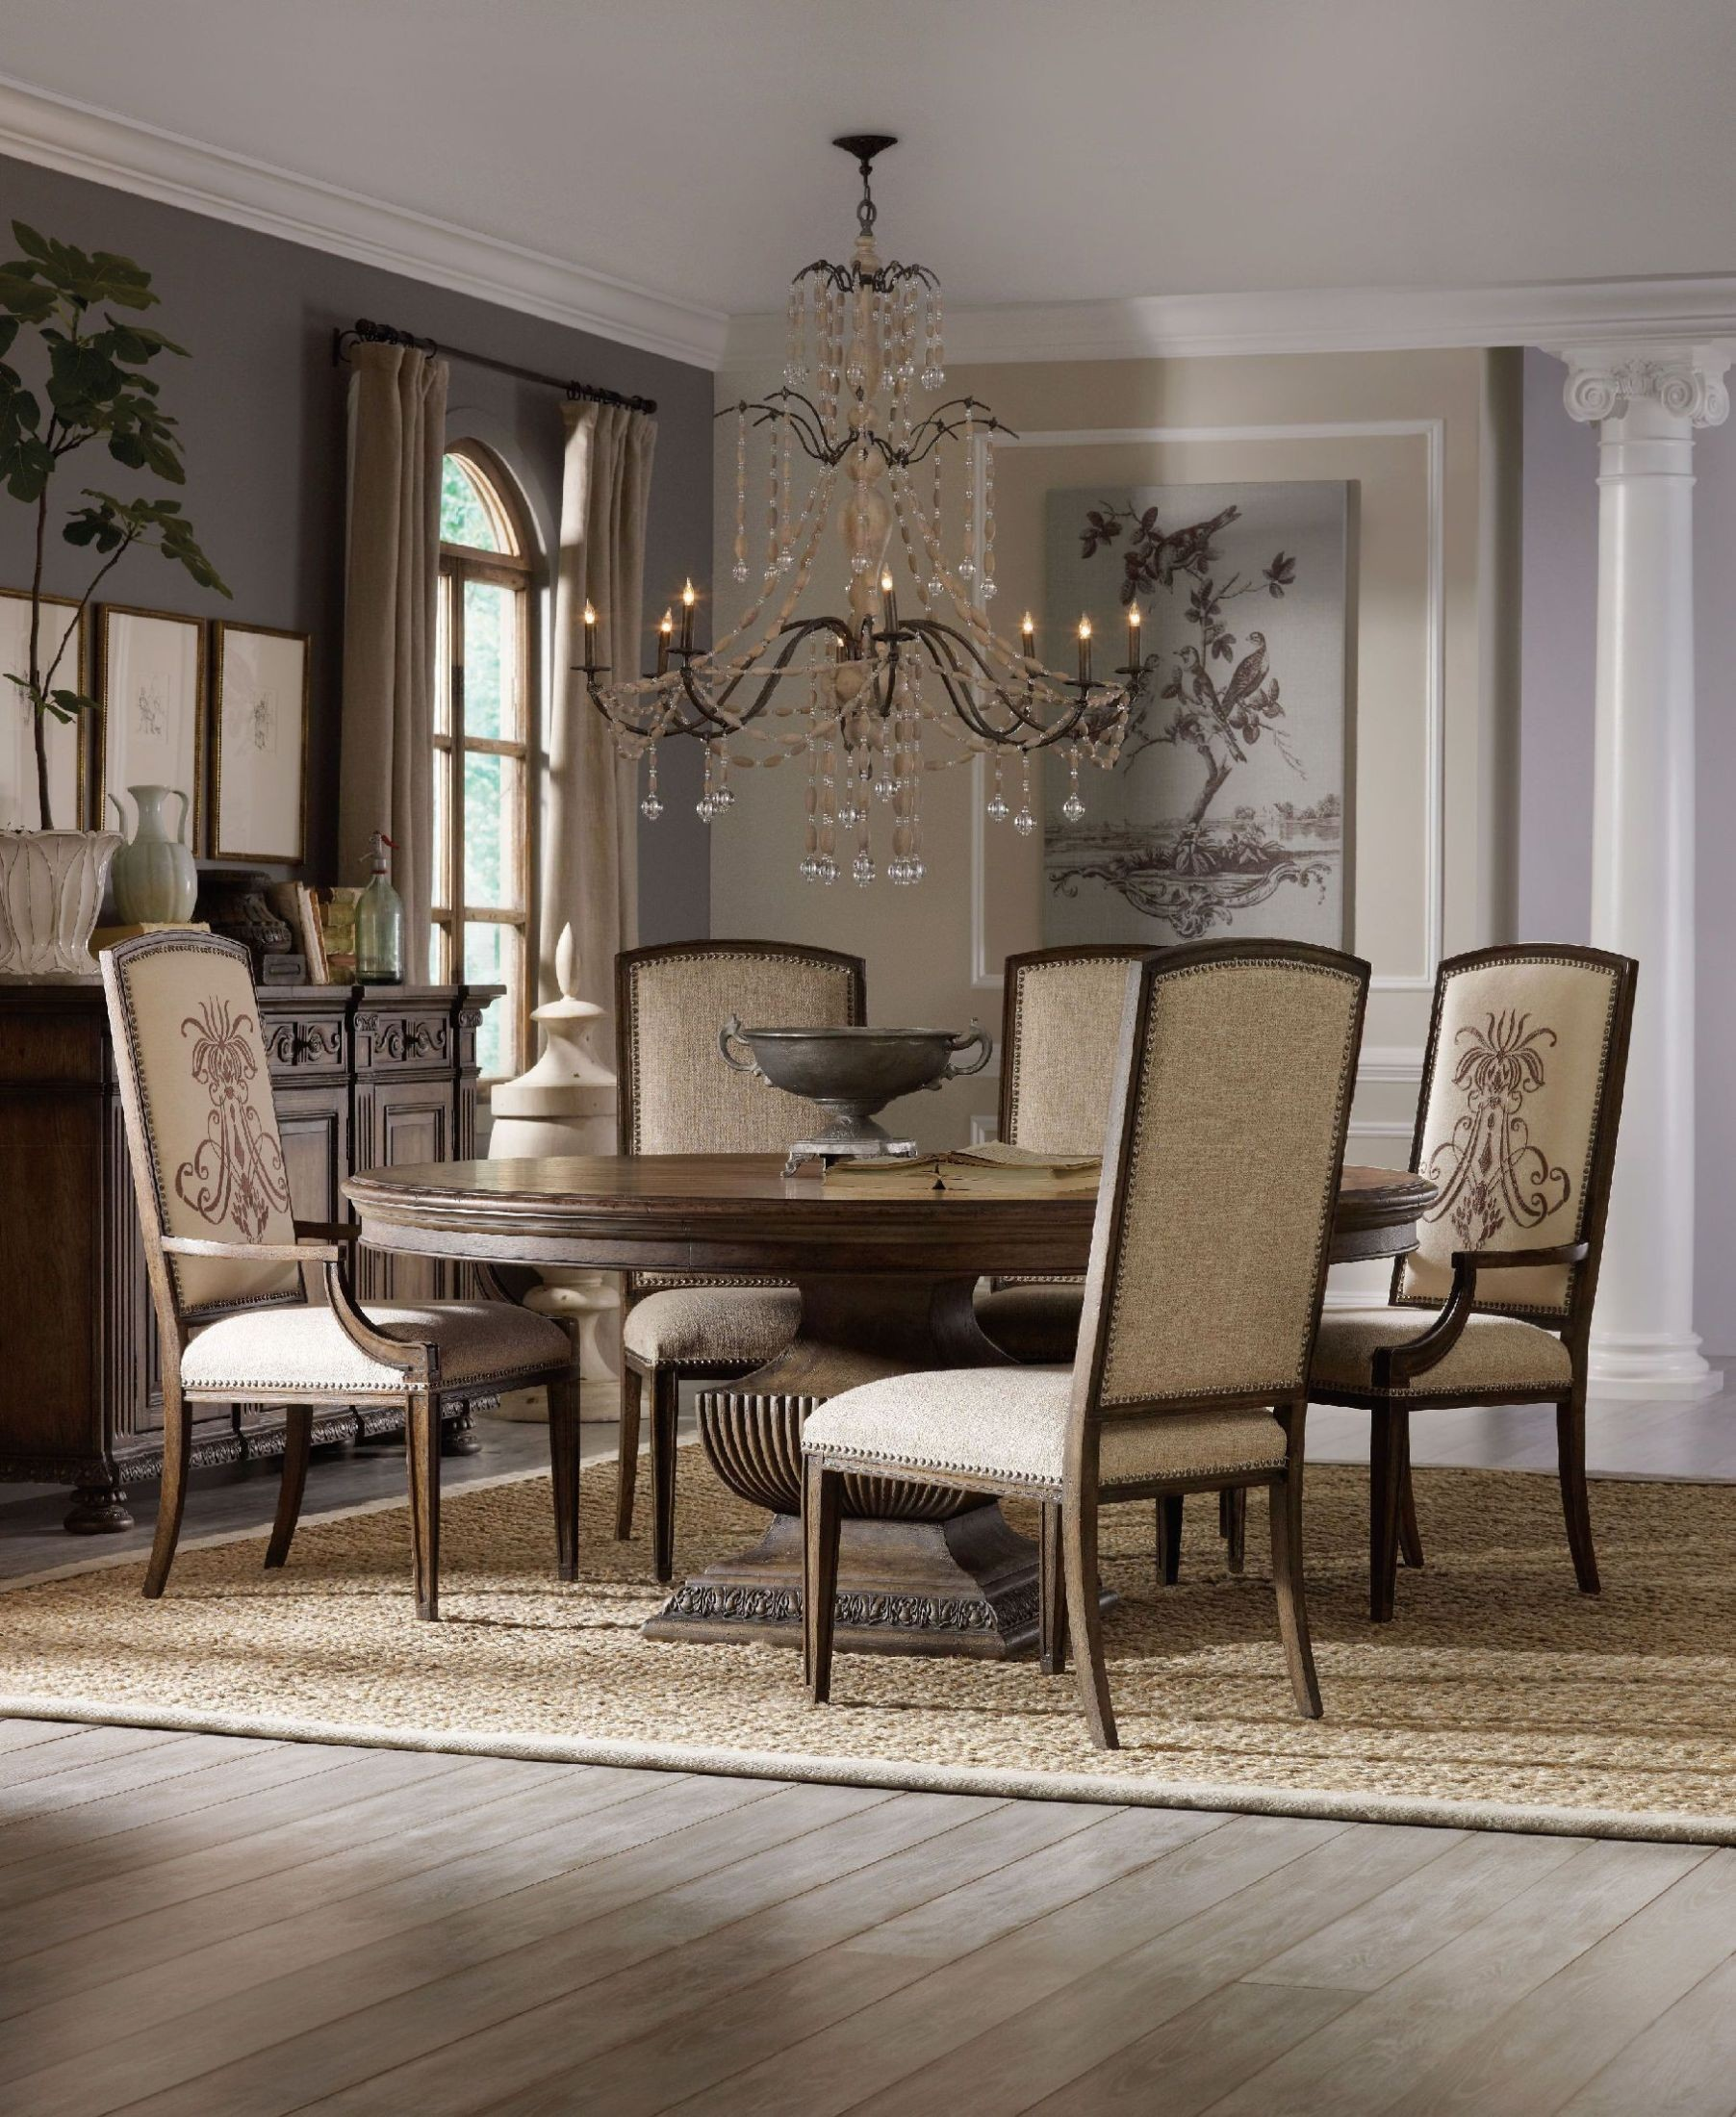 Rhapsody Brown 60 Round Dining Room Set from Hooker  Coleman Furniture